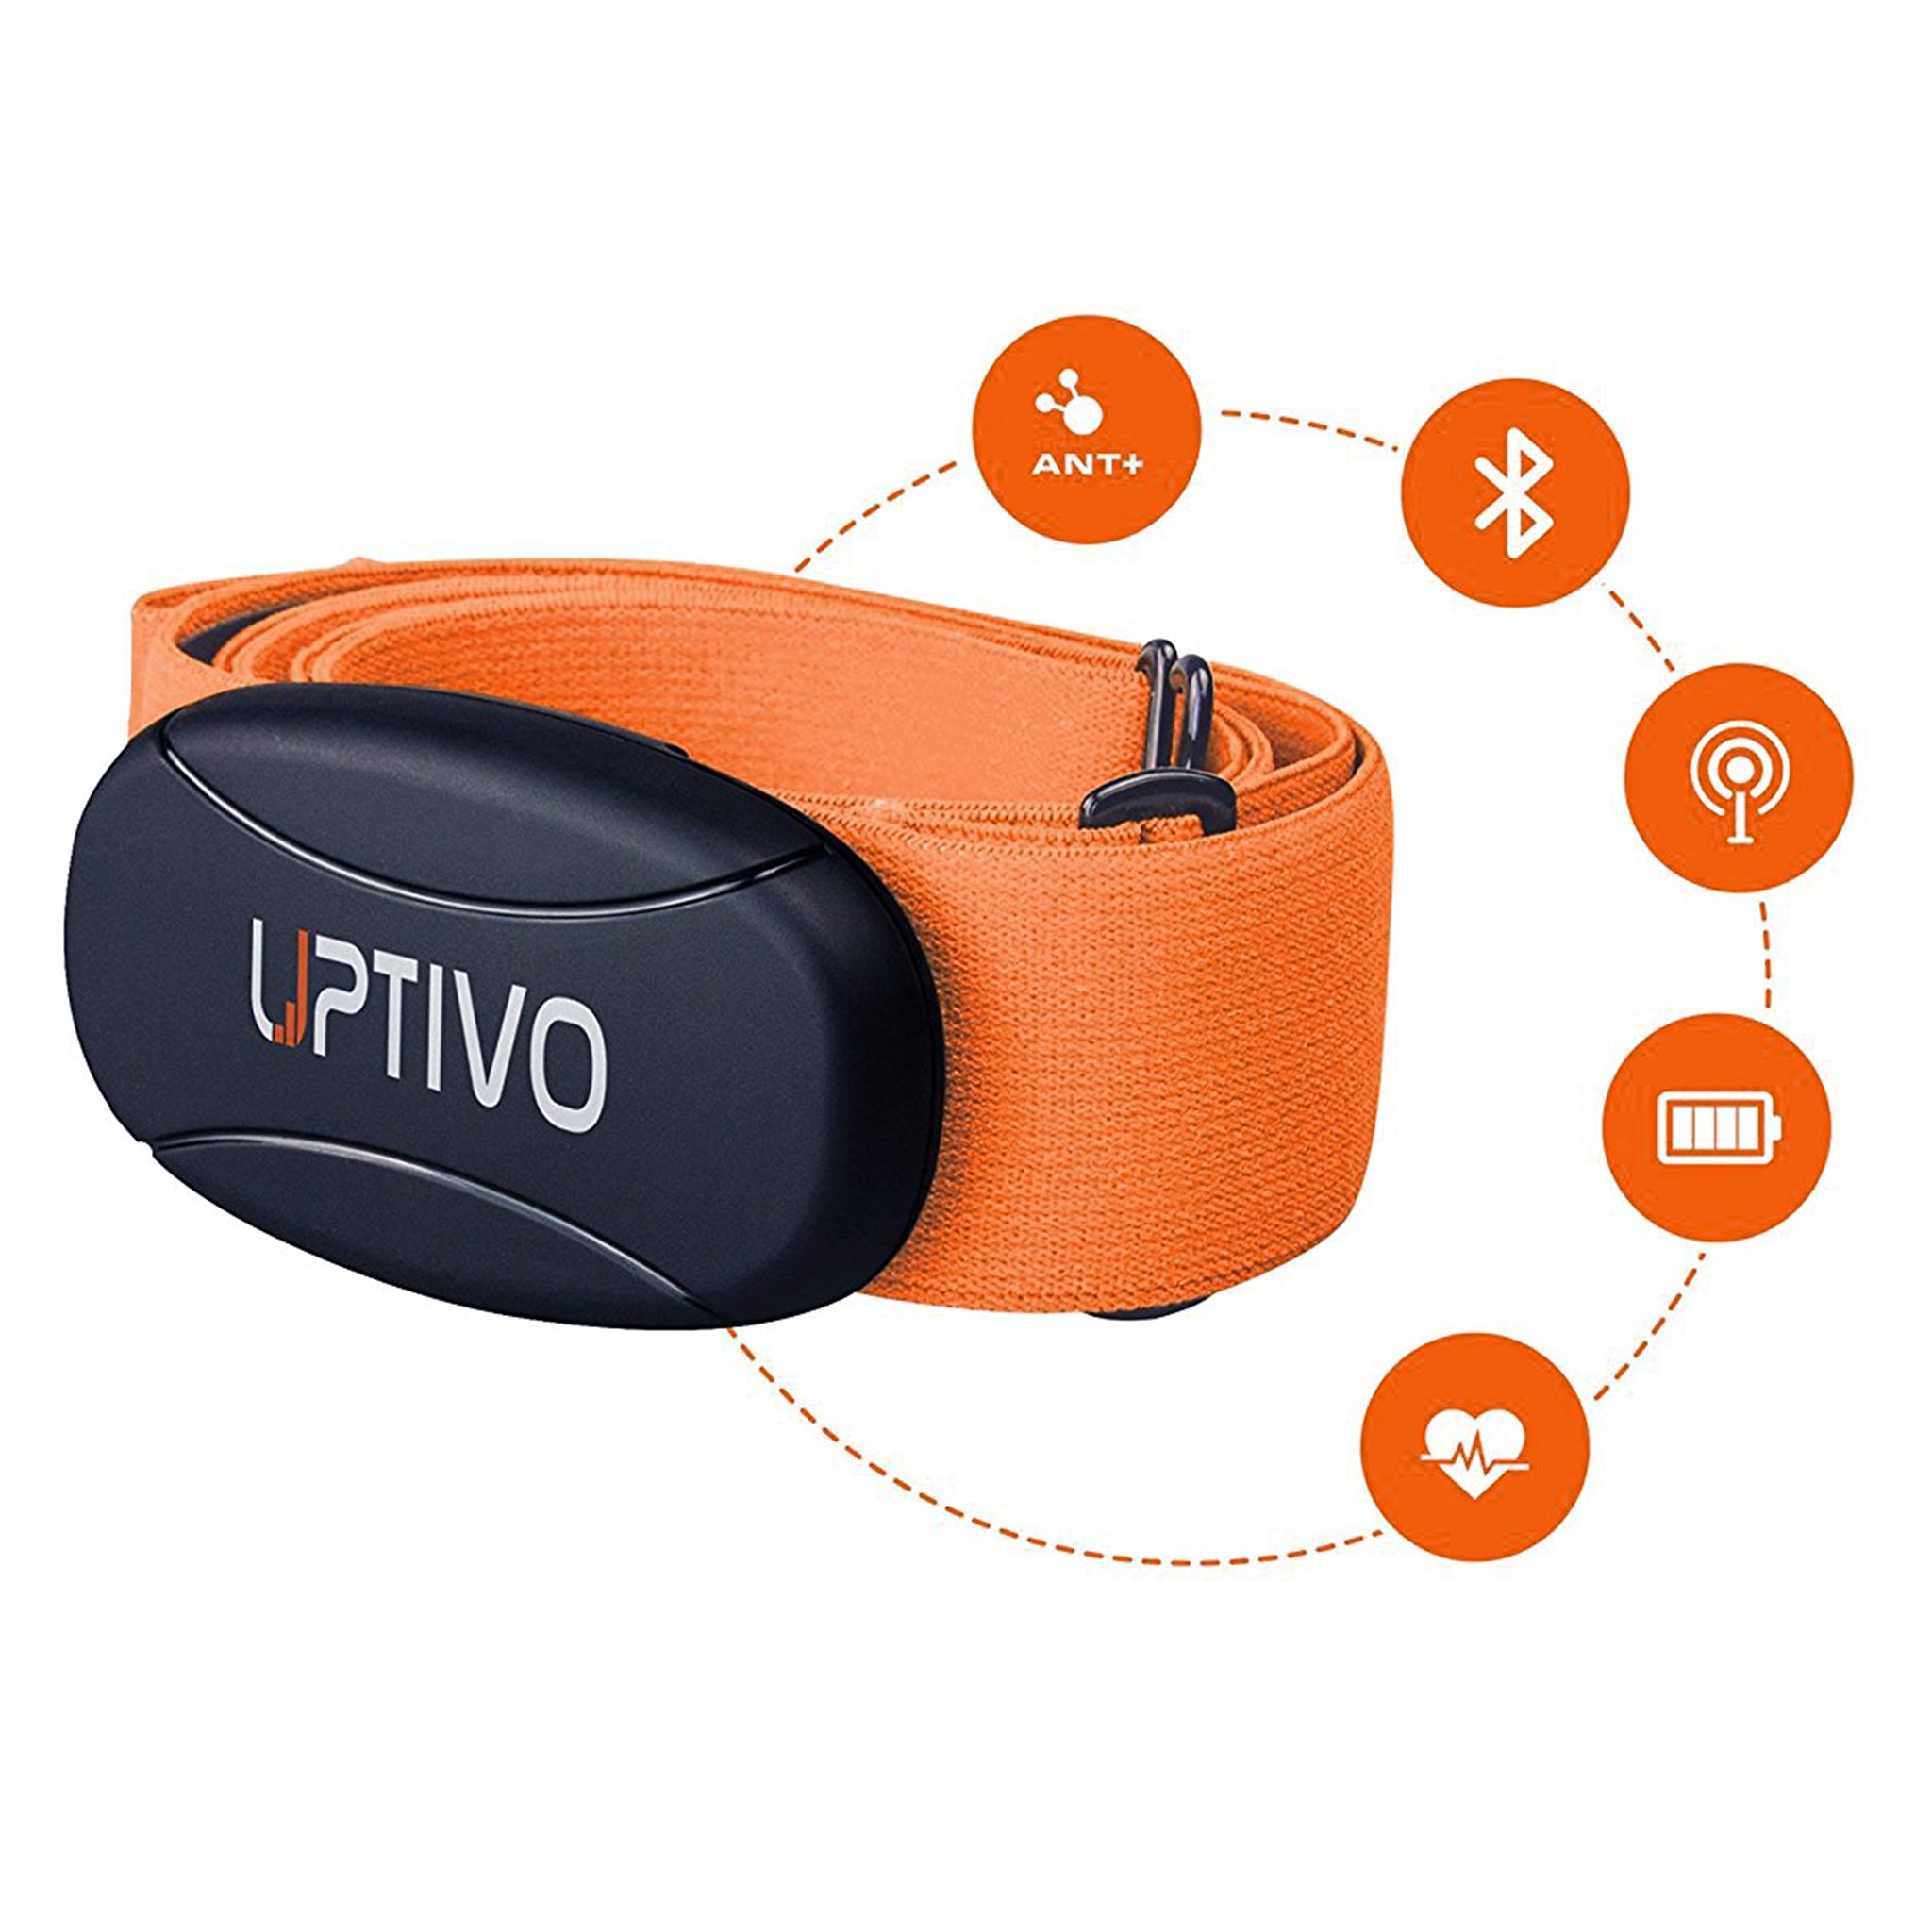 Uptivo Heart Rate Training System